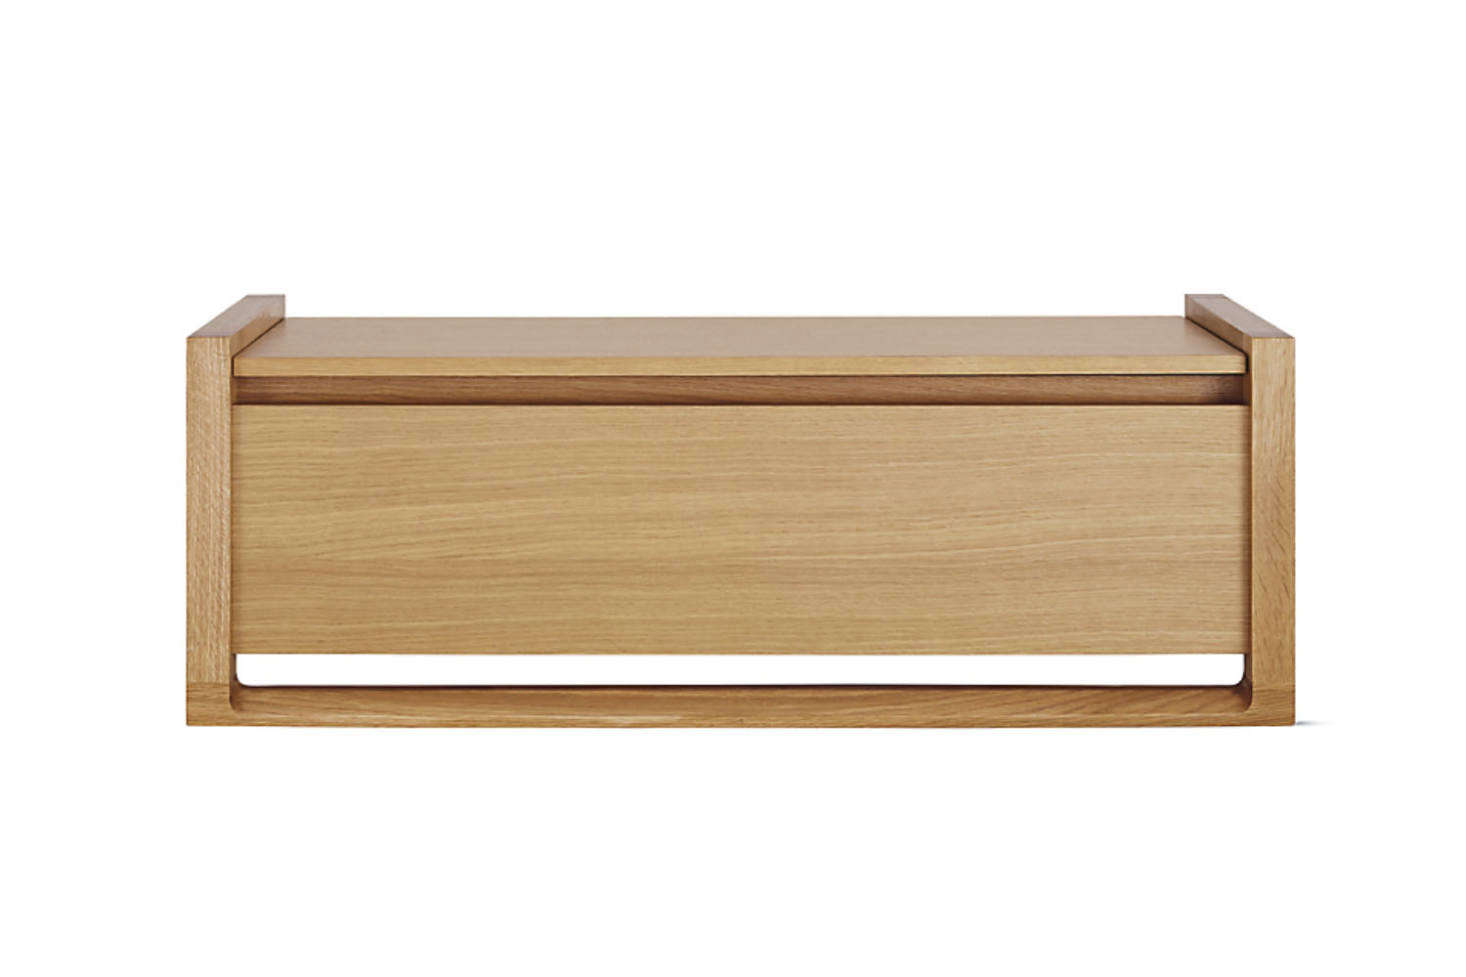 Designed by Sean Yoo for Design Within Reach, the Matera Storage Bench is available in oak and walnut and in sizes small and large; $995 to $src=